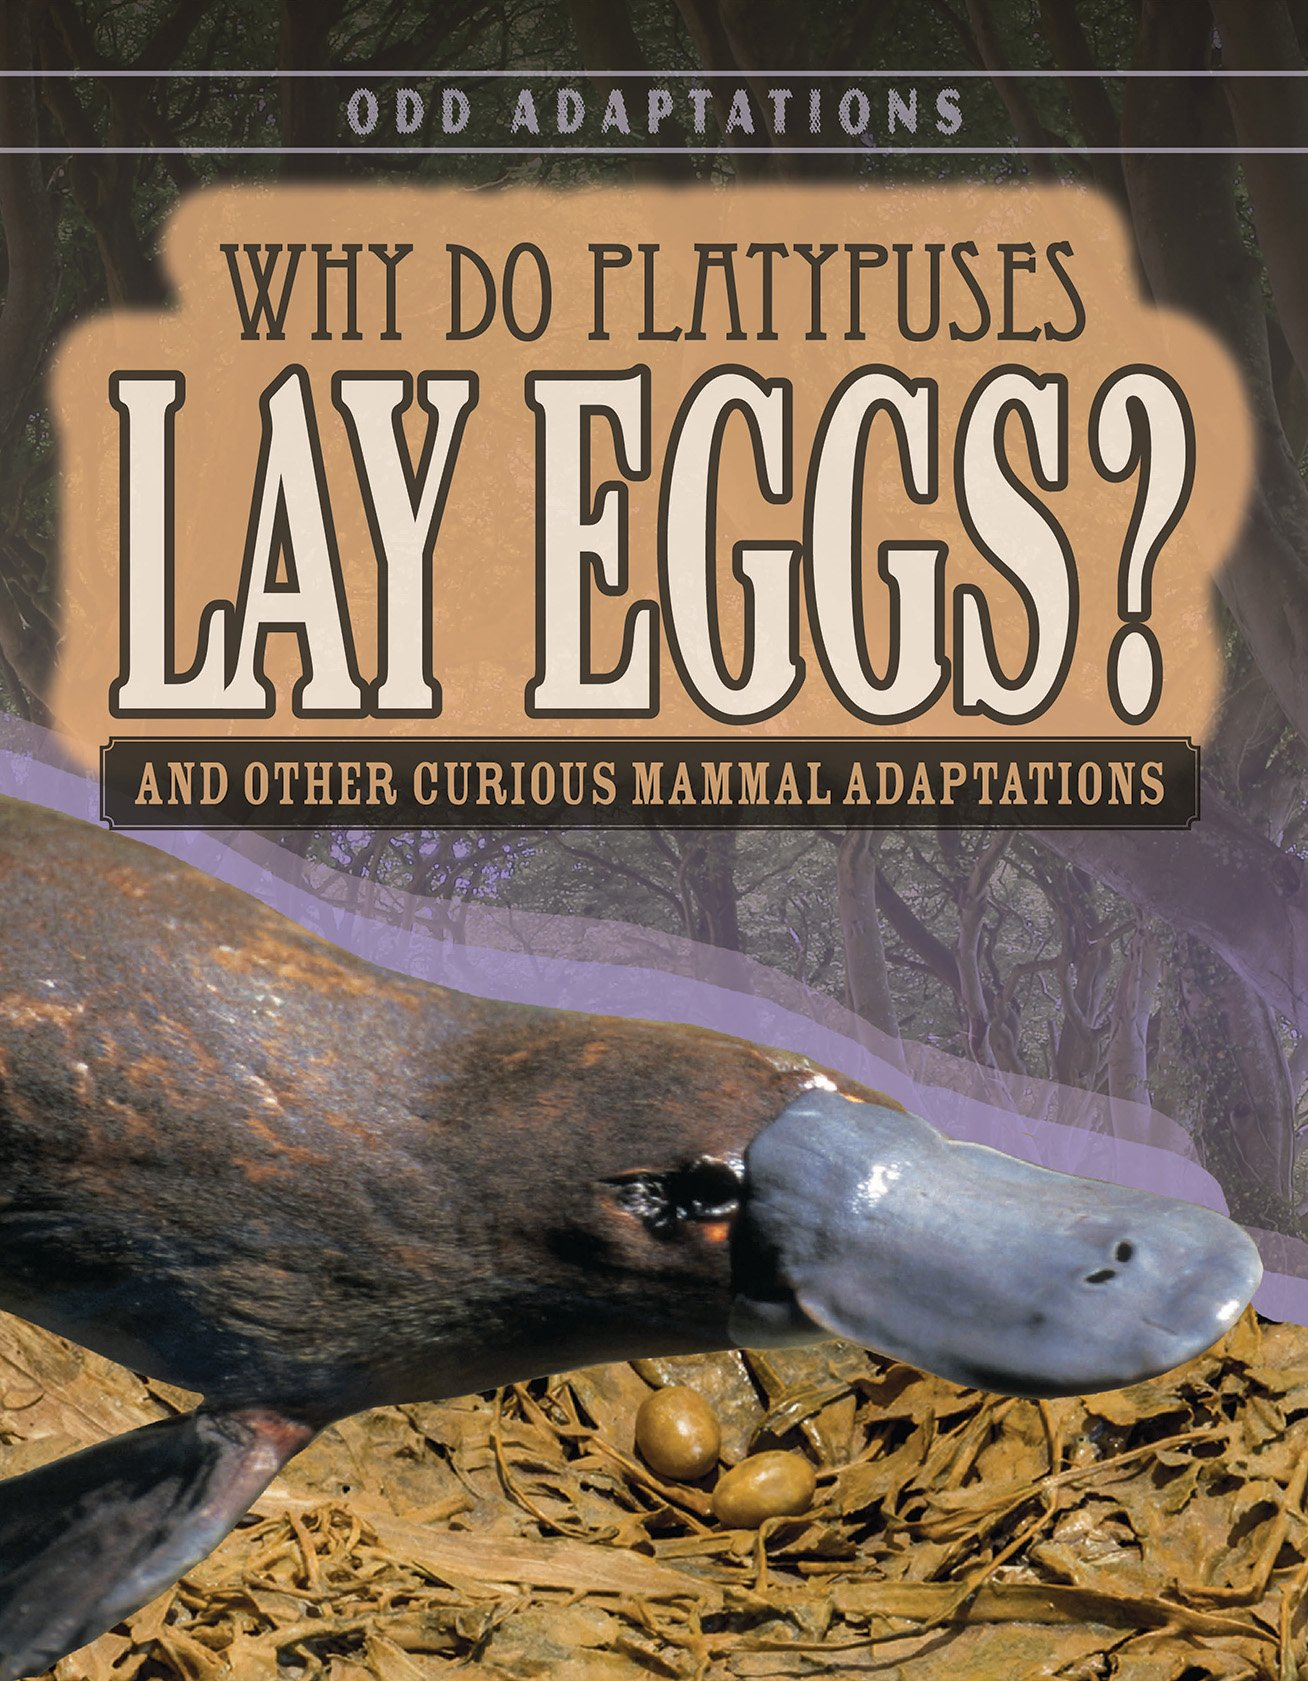 Why Do Platypuses Lay Eggs?: And Other Curious Mammal